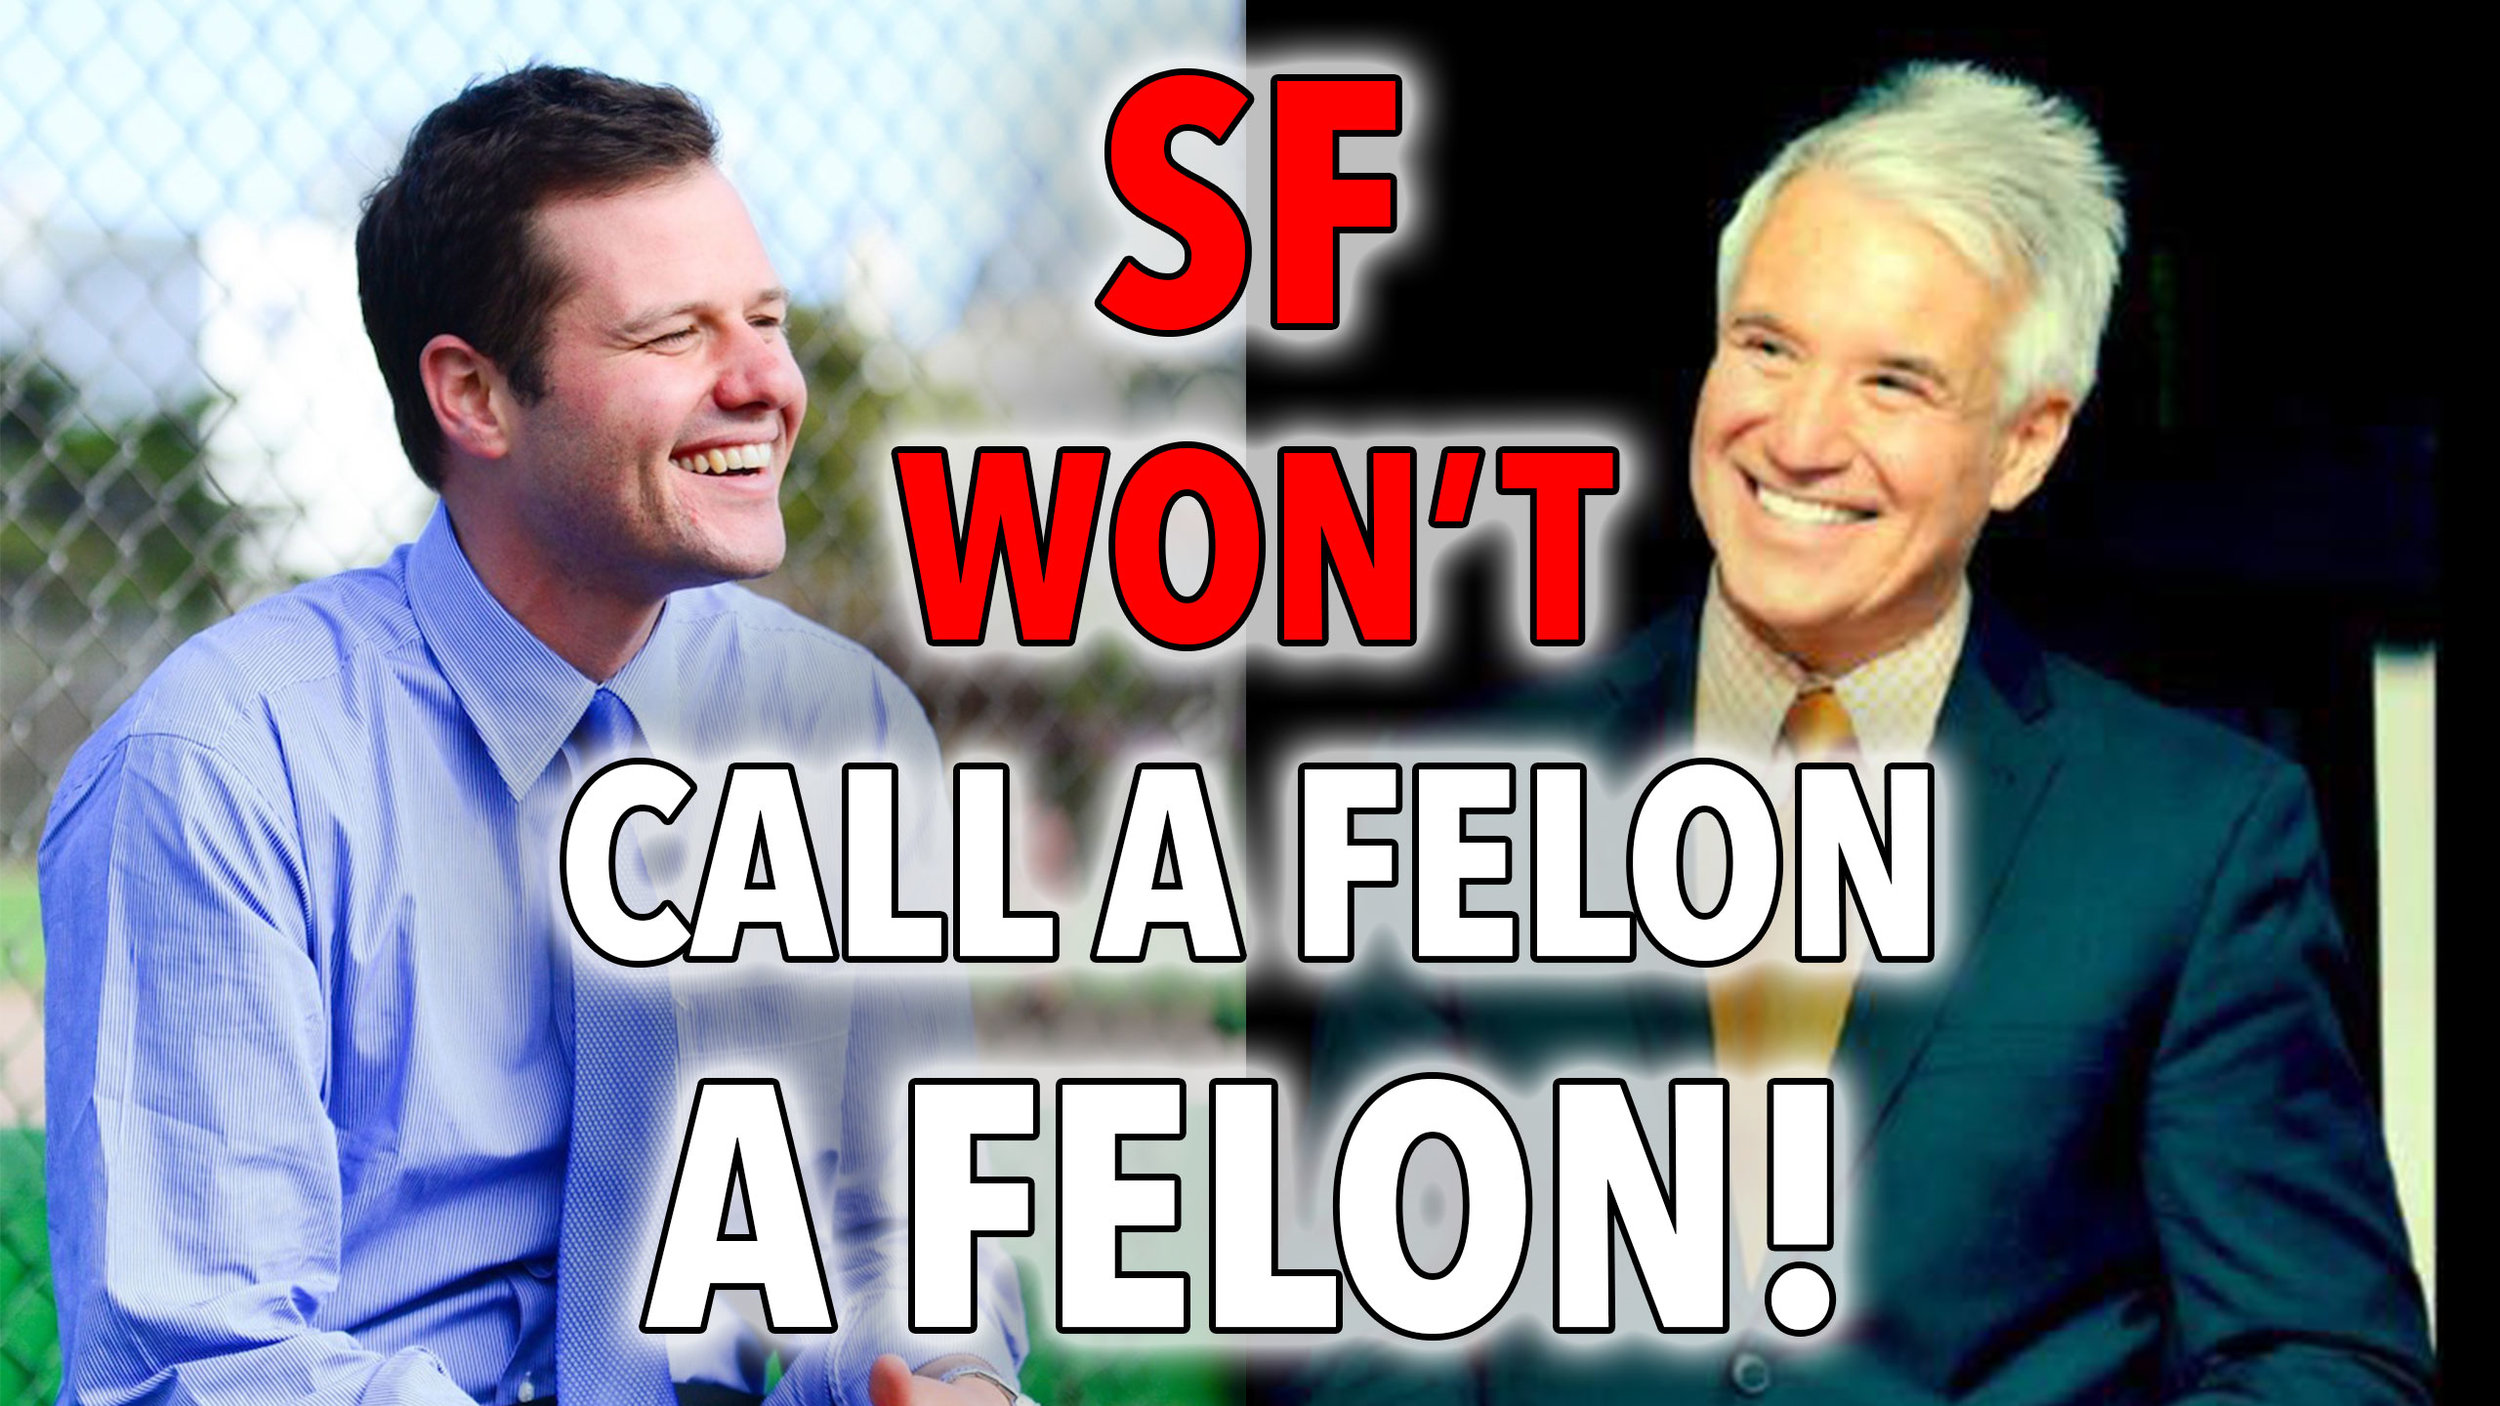 Thumbnail: SF won't call a felon a felon!